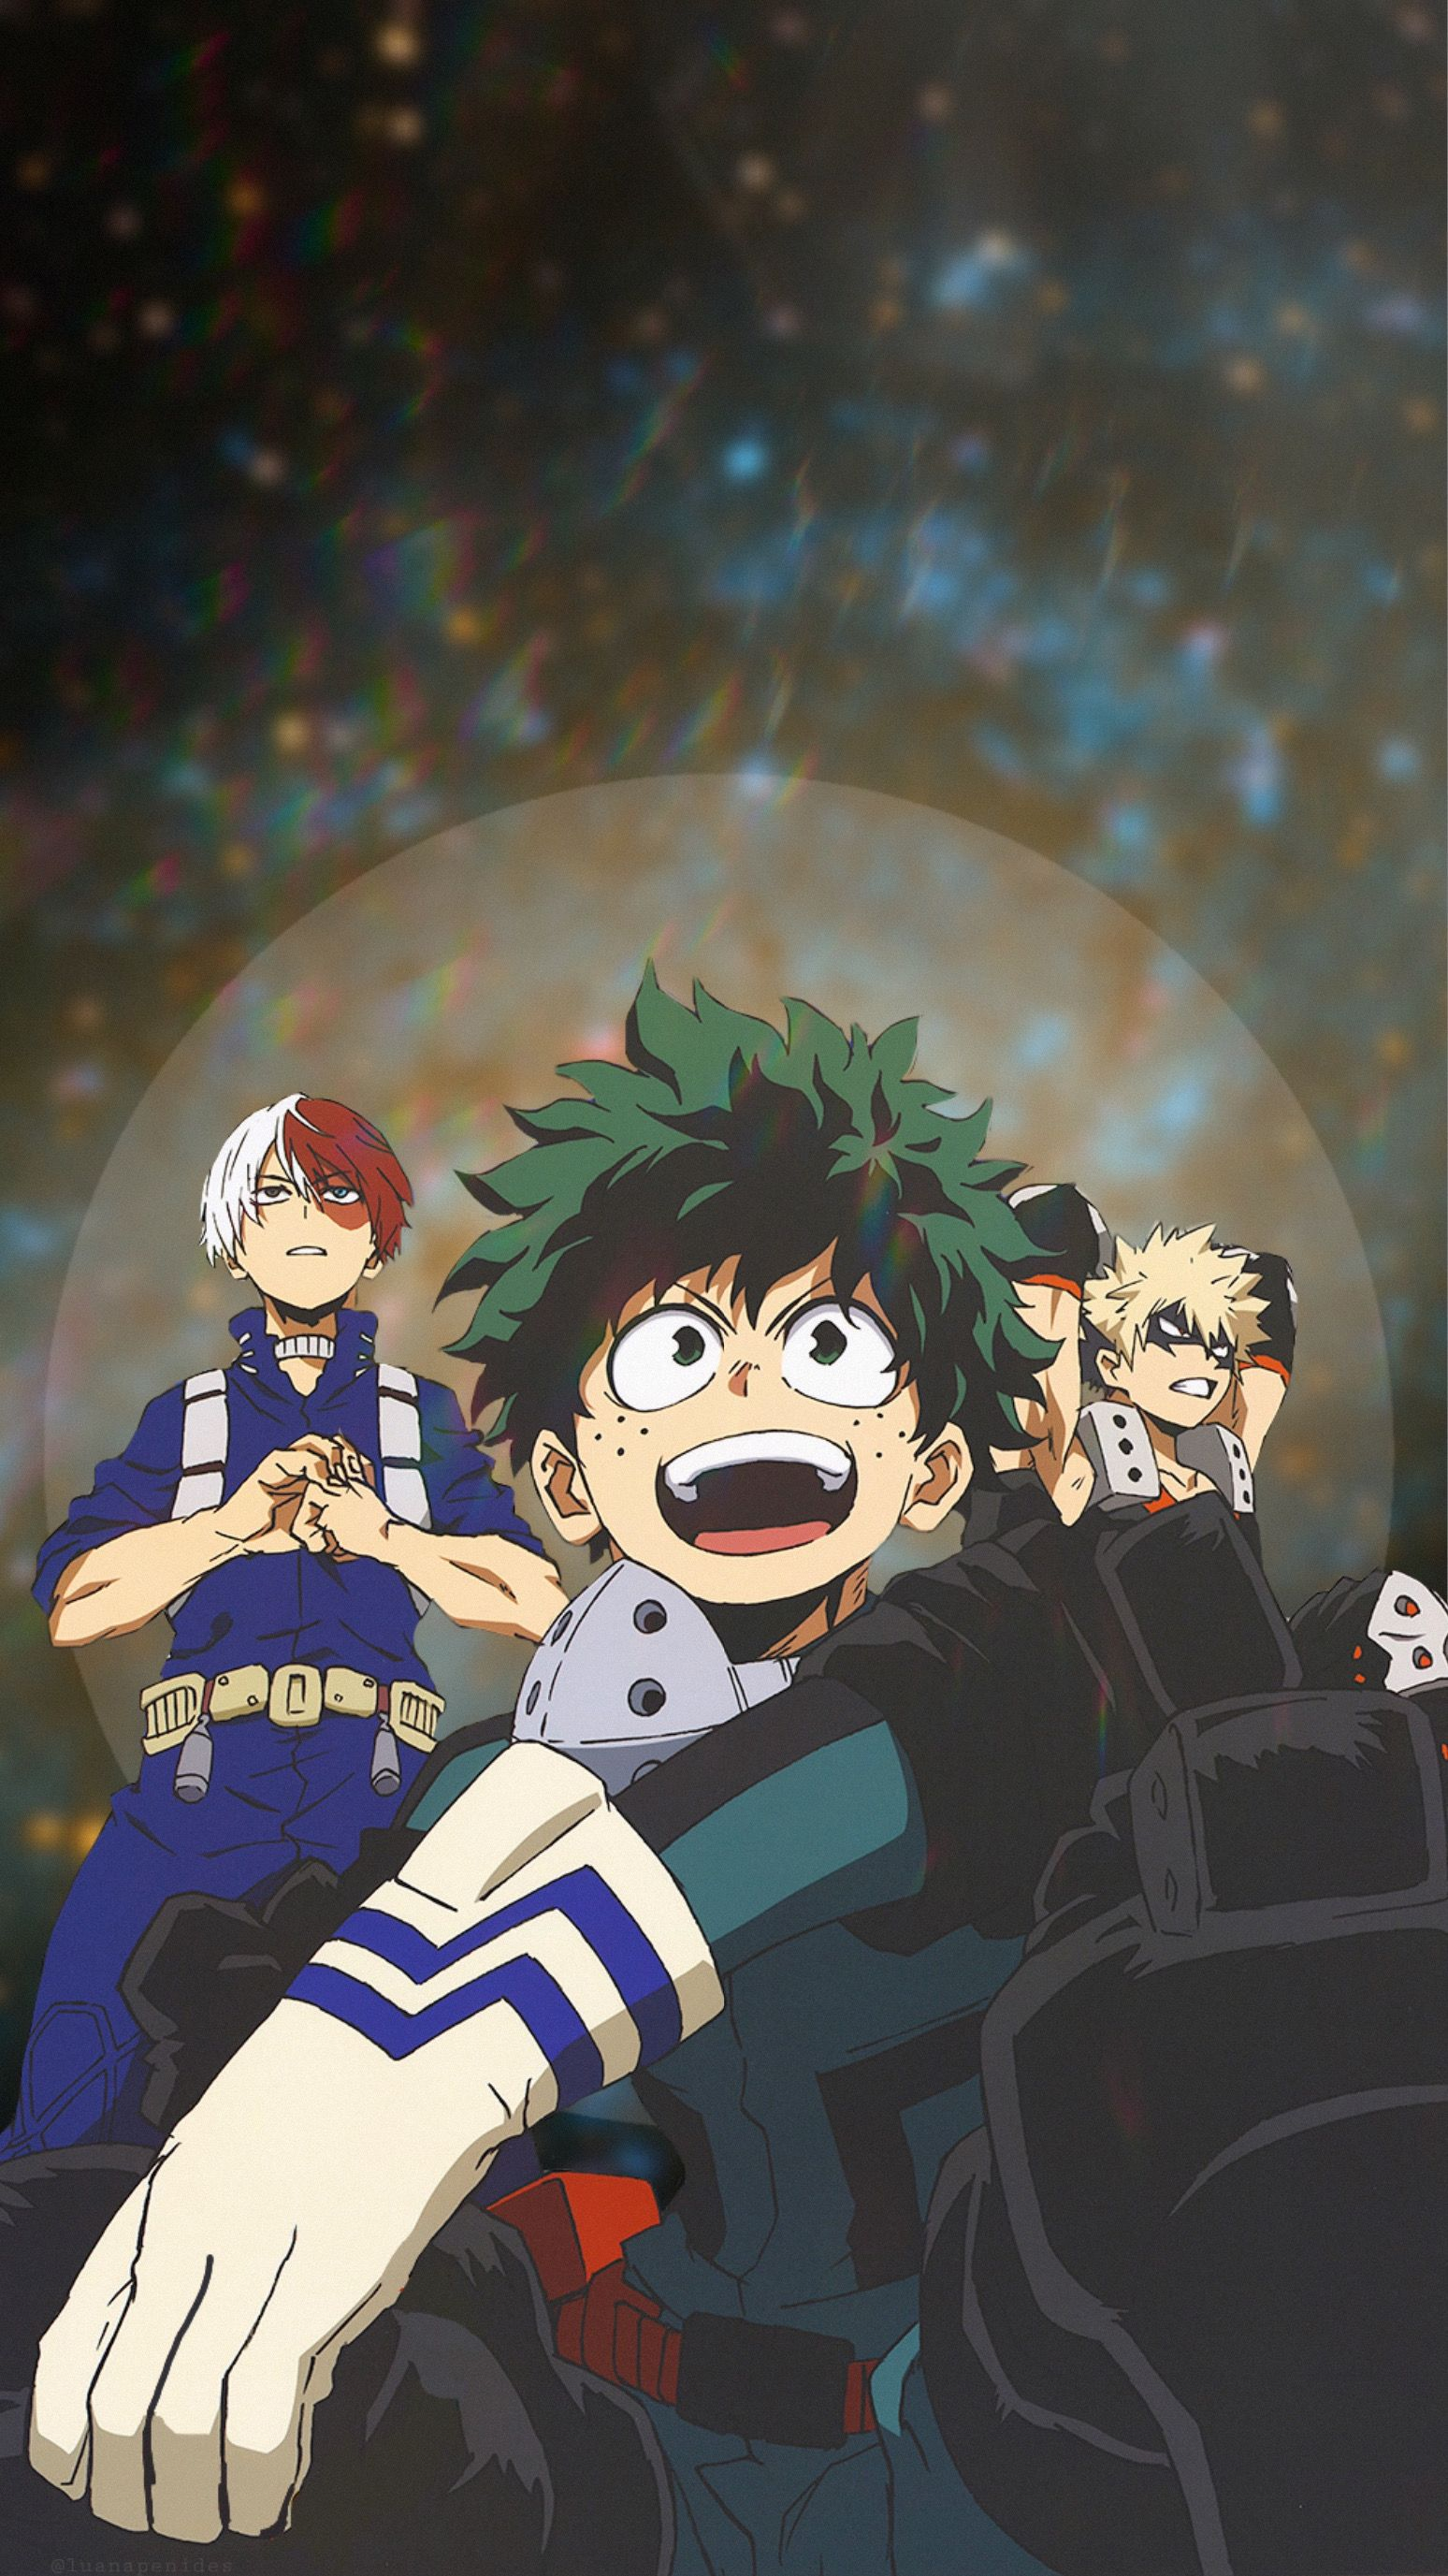 Boku No Hero Academia Cute Anime Character Cute Anime Guys My Hero Academia Episodes 1920x1481 todoroki deku kirishima and bakugou wallpaper>. cute anime guys my hero academia episodes